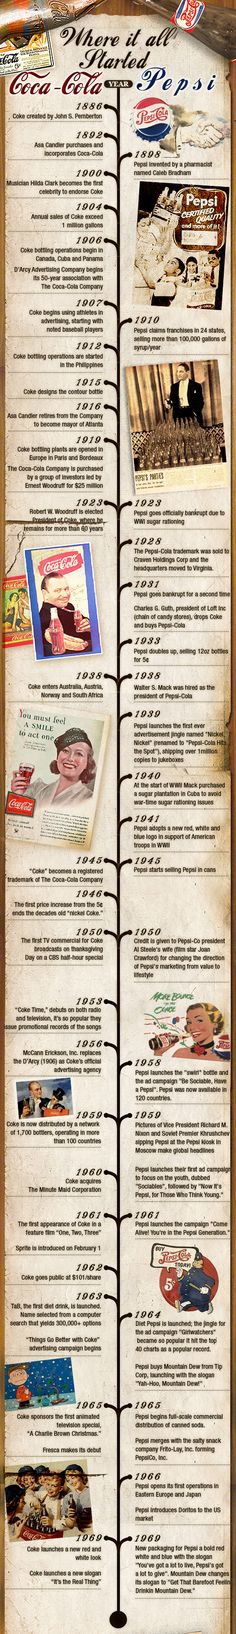 Where it all started. Coca-Cola. Pepsi - http://www.coolinfoimages.com/infographics/where-it-all-started-coca-cola-pepsi/